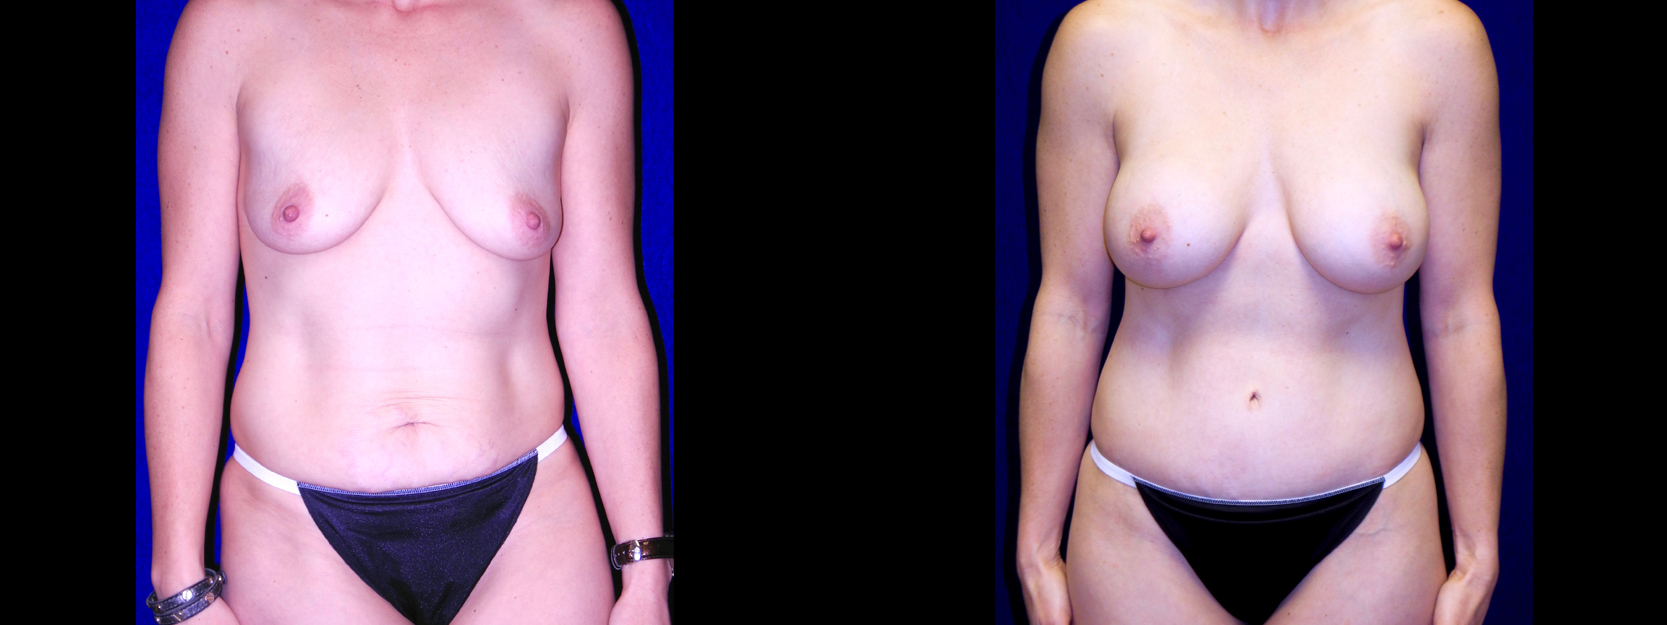 Frontal View - Breast Augmentation & Tummy Tuck